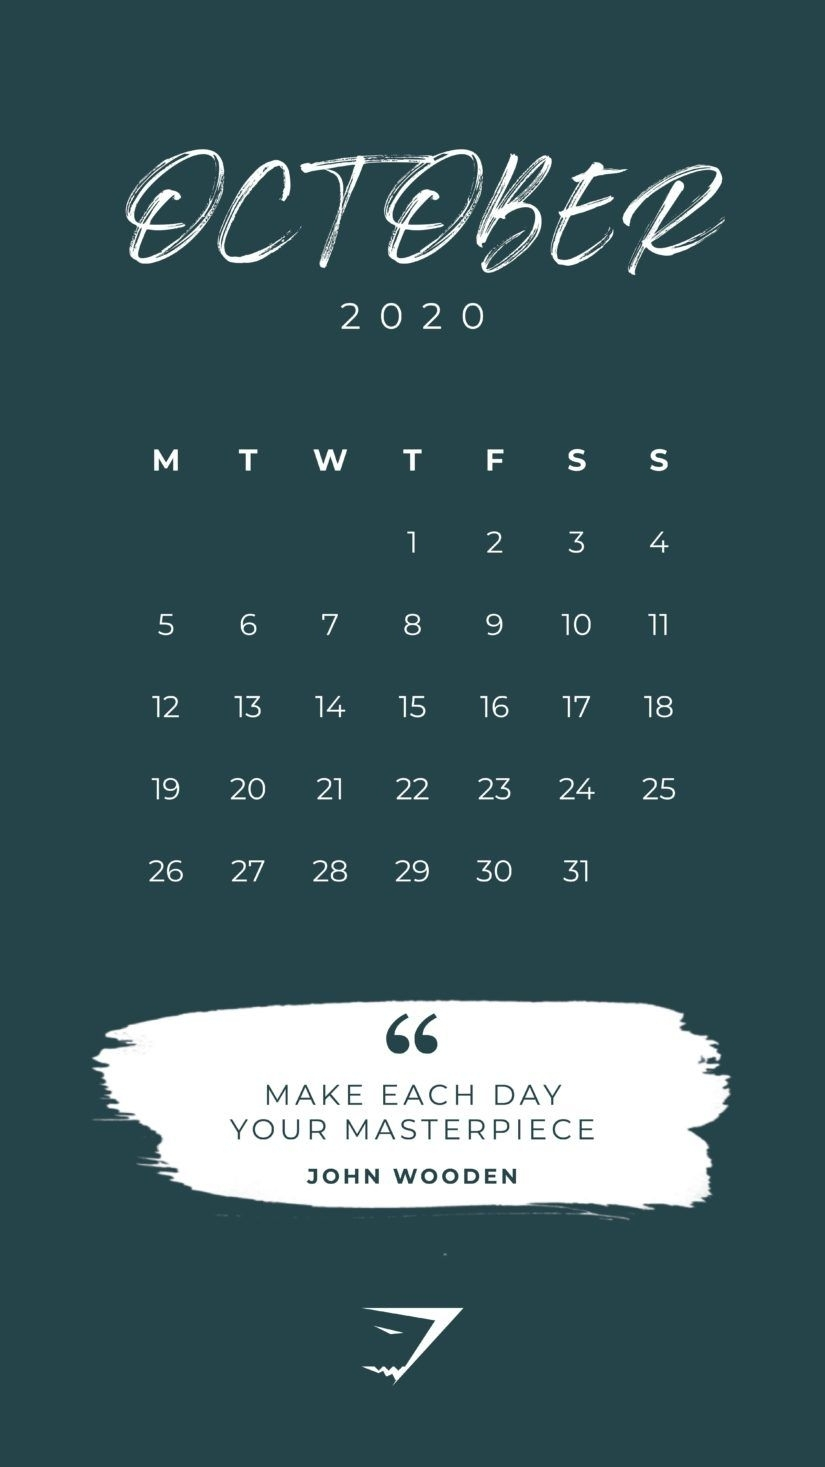 50 Free Printable October 2020 Calendars With Holidays Trong